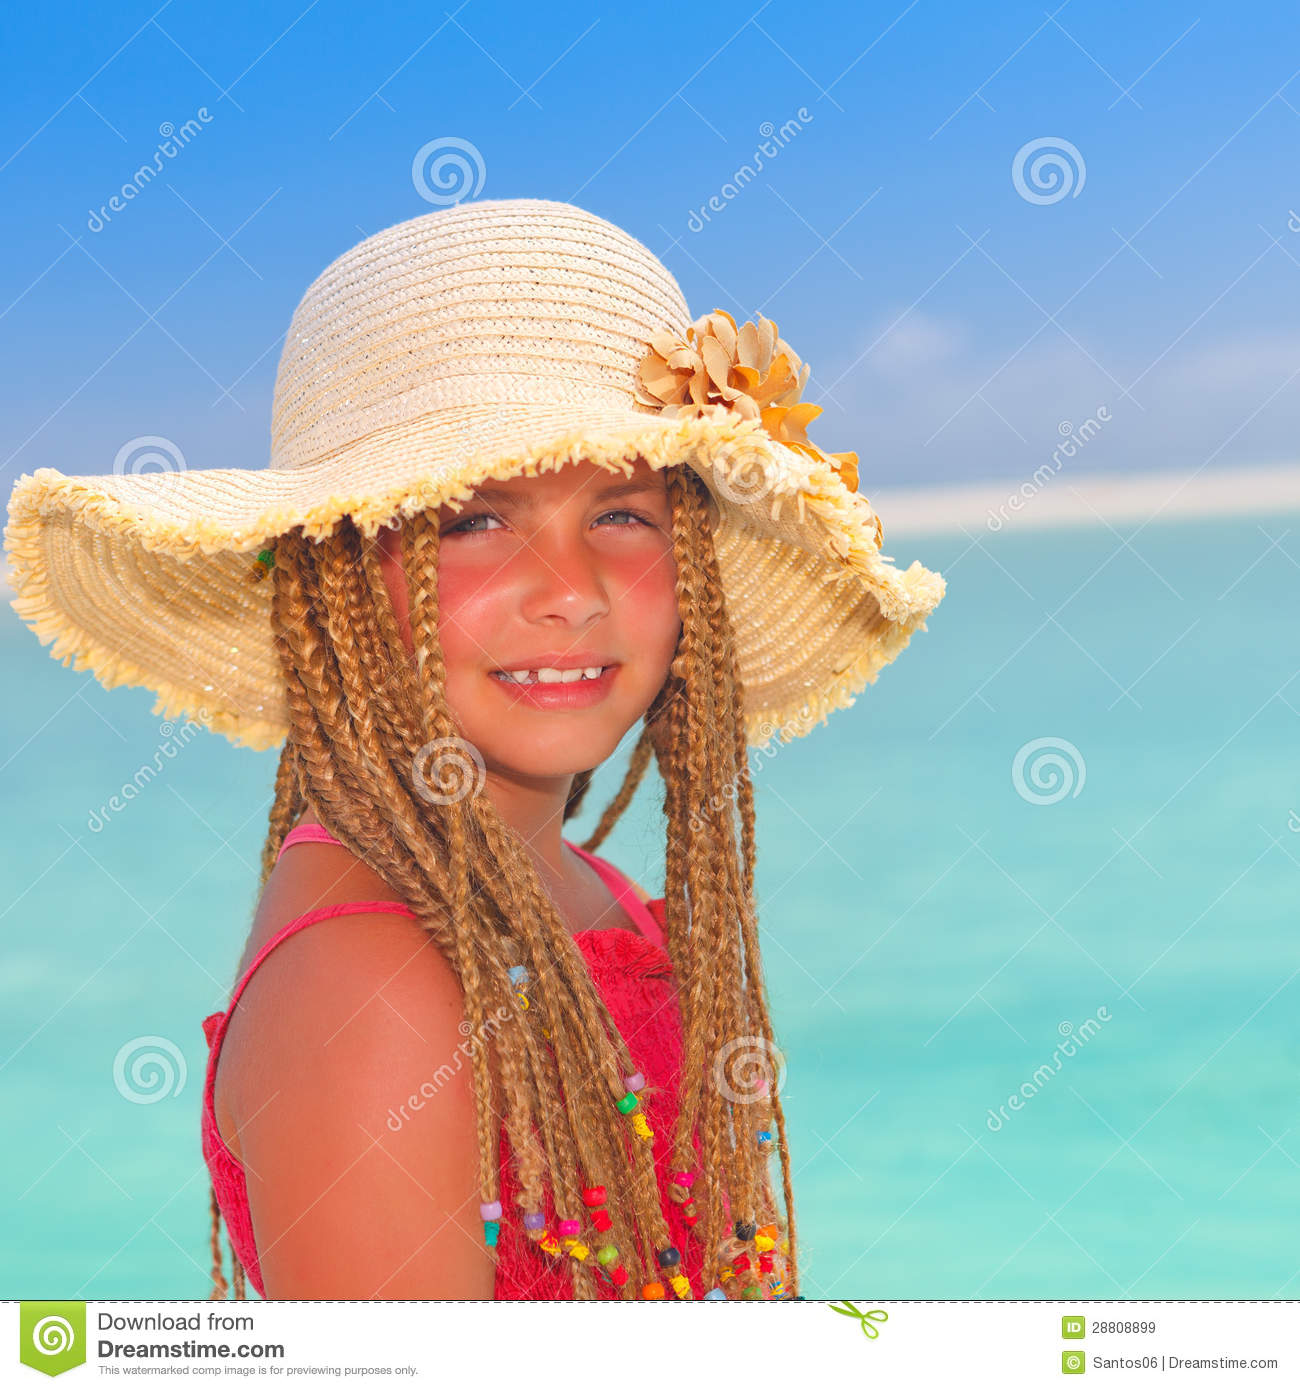 Girl With Sun Hat At Tropical Destination Royalty Free